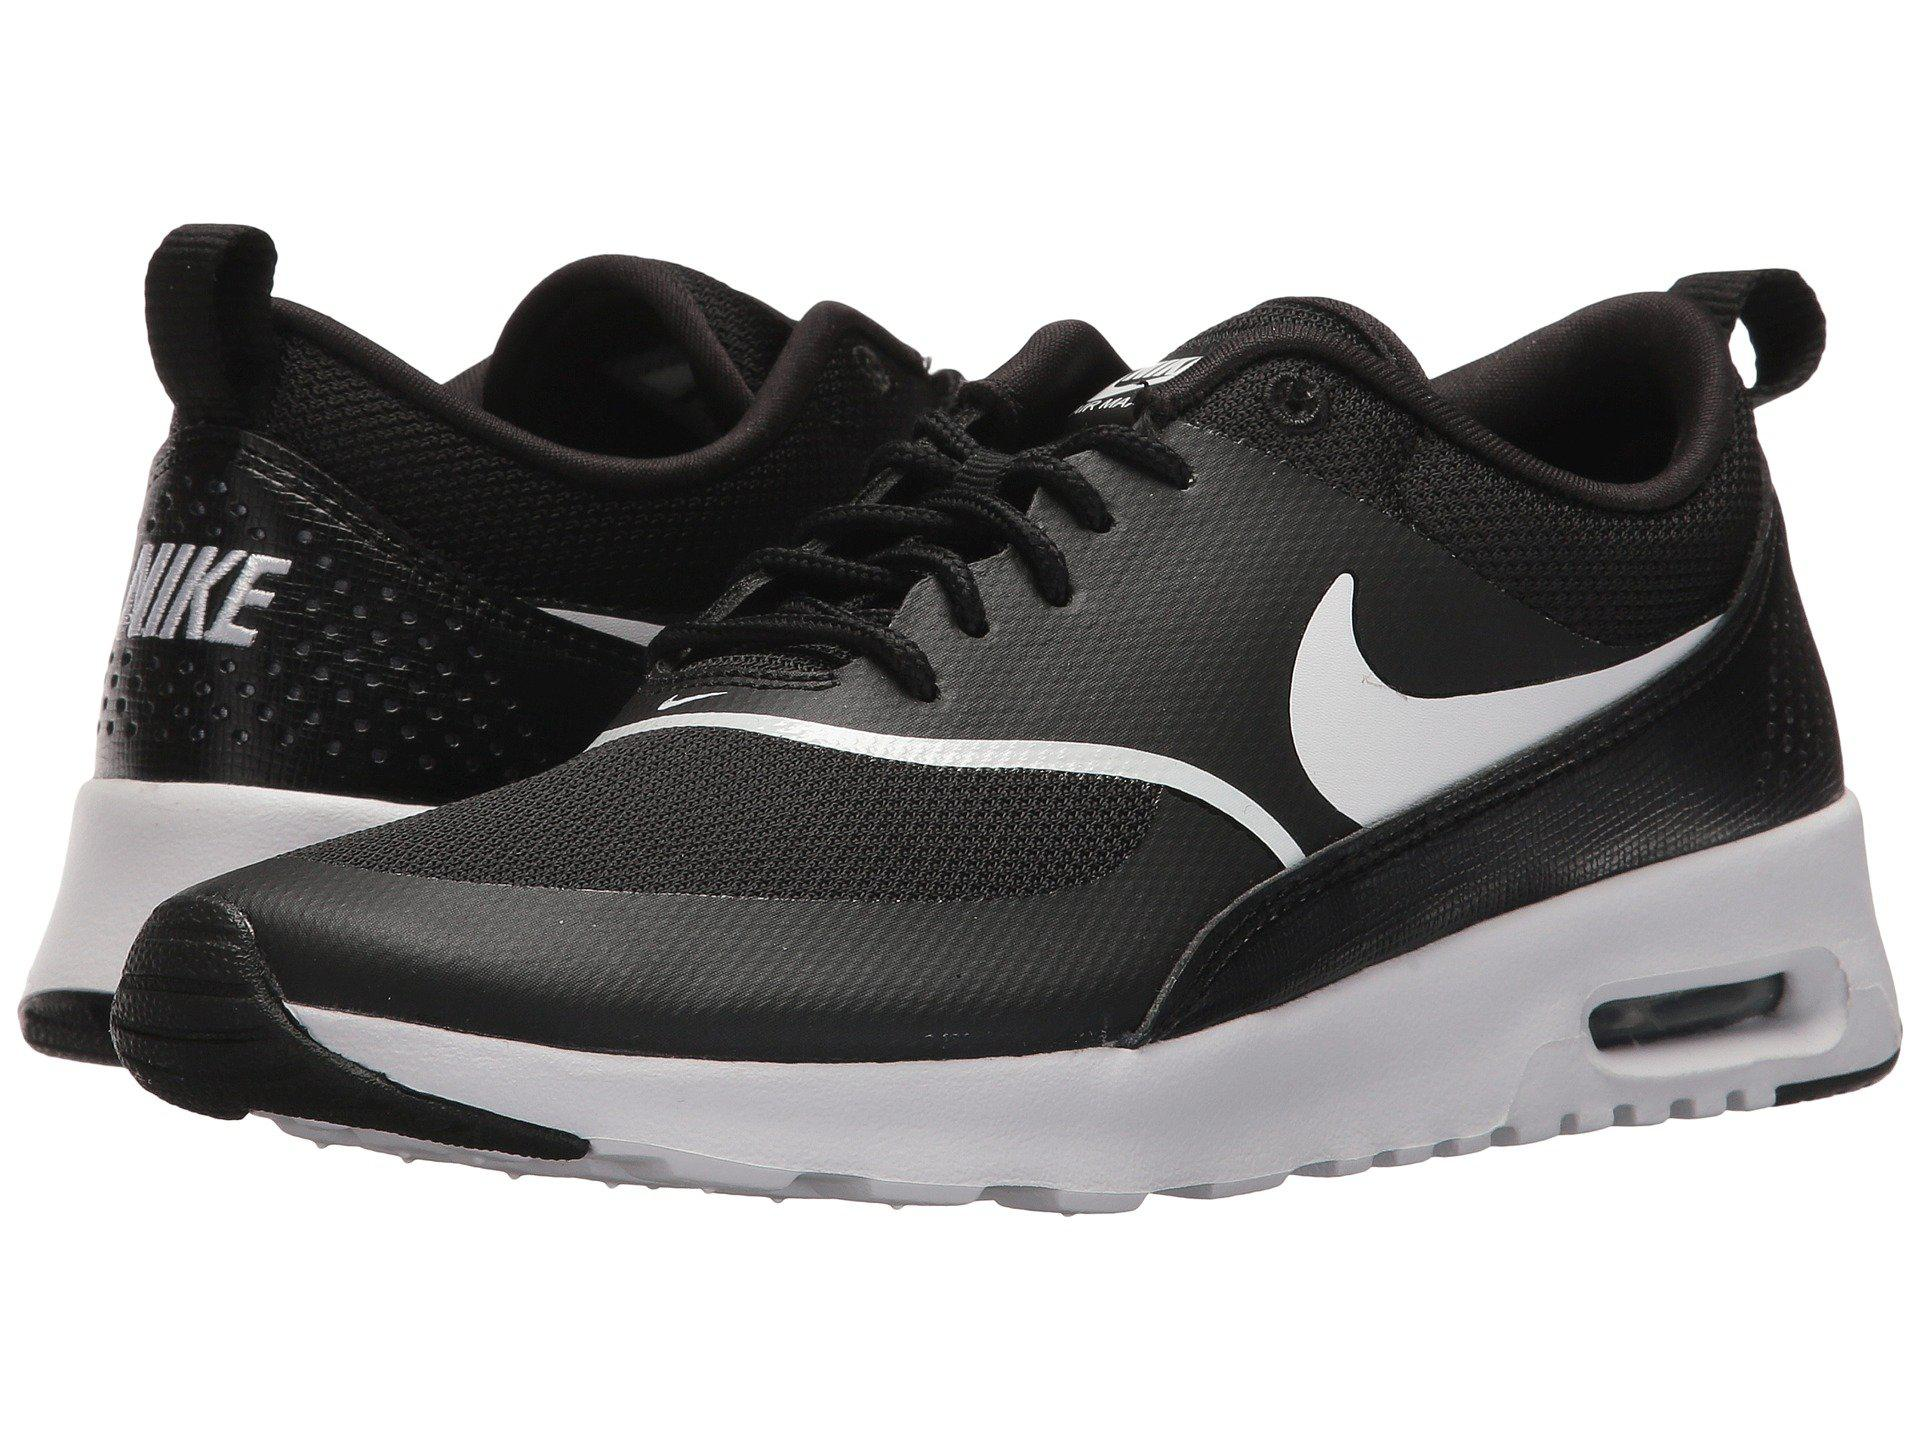 Nike Air Max Thea (stringlight Creamblackwhite) Women's Shoes